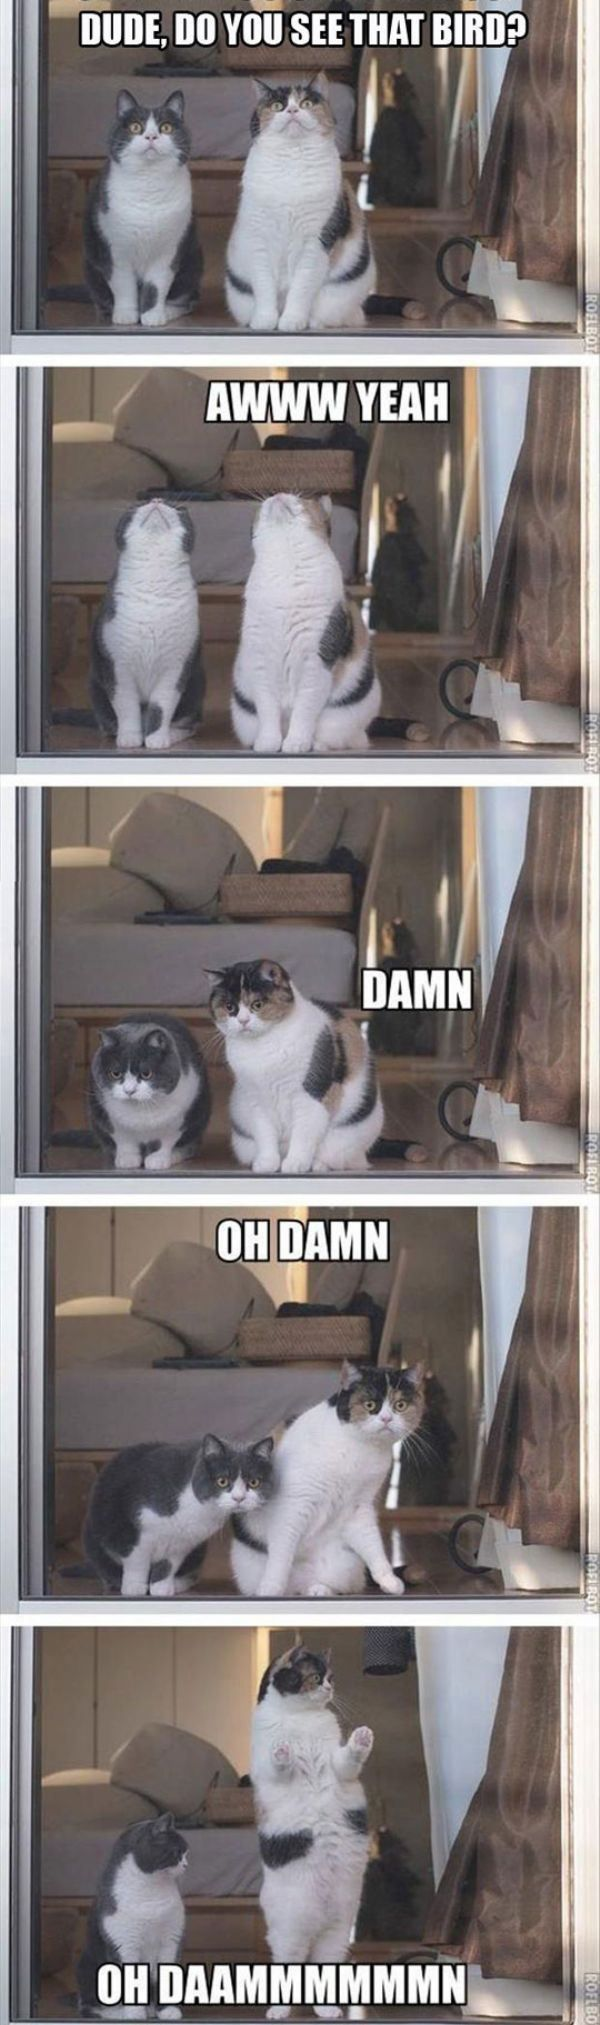 Dude did you see That Bird #Funny #cat #animal